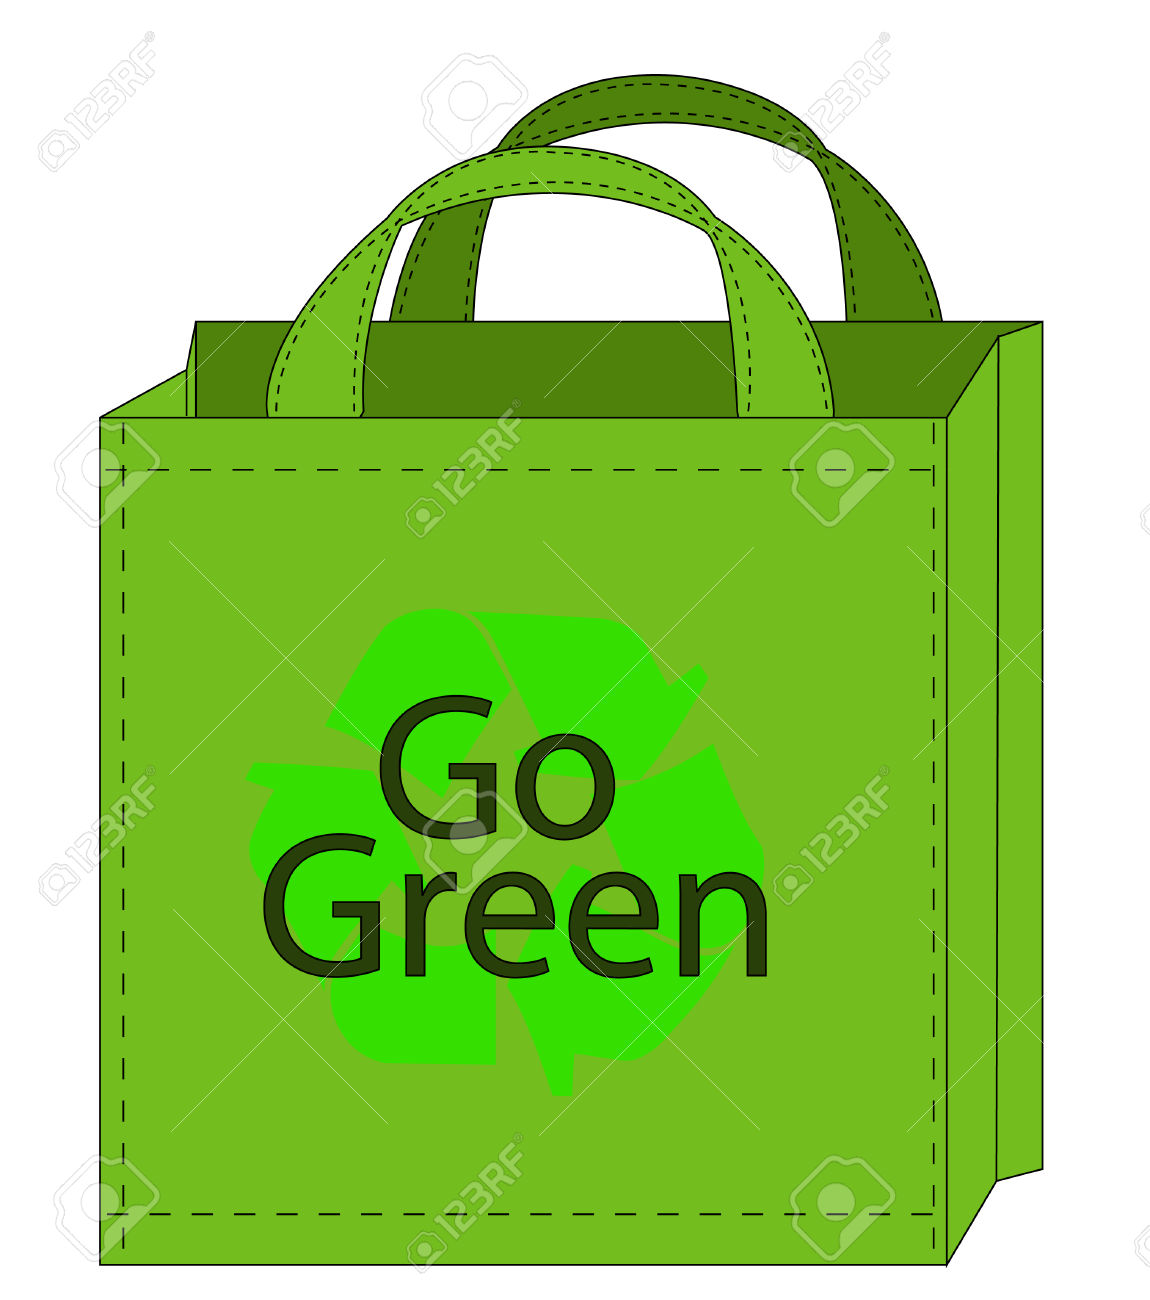 Reusable Bag Clipart.